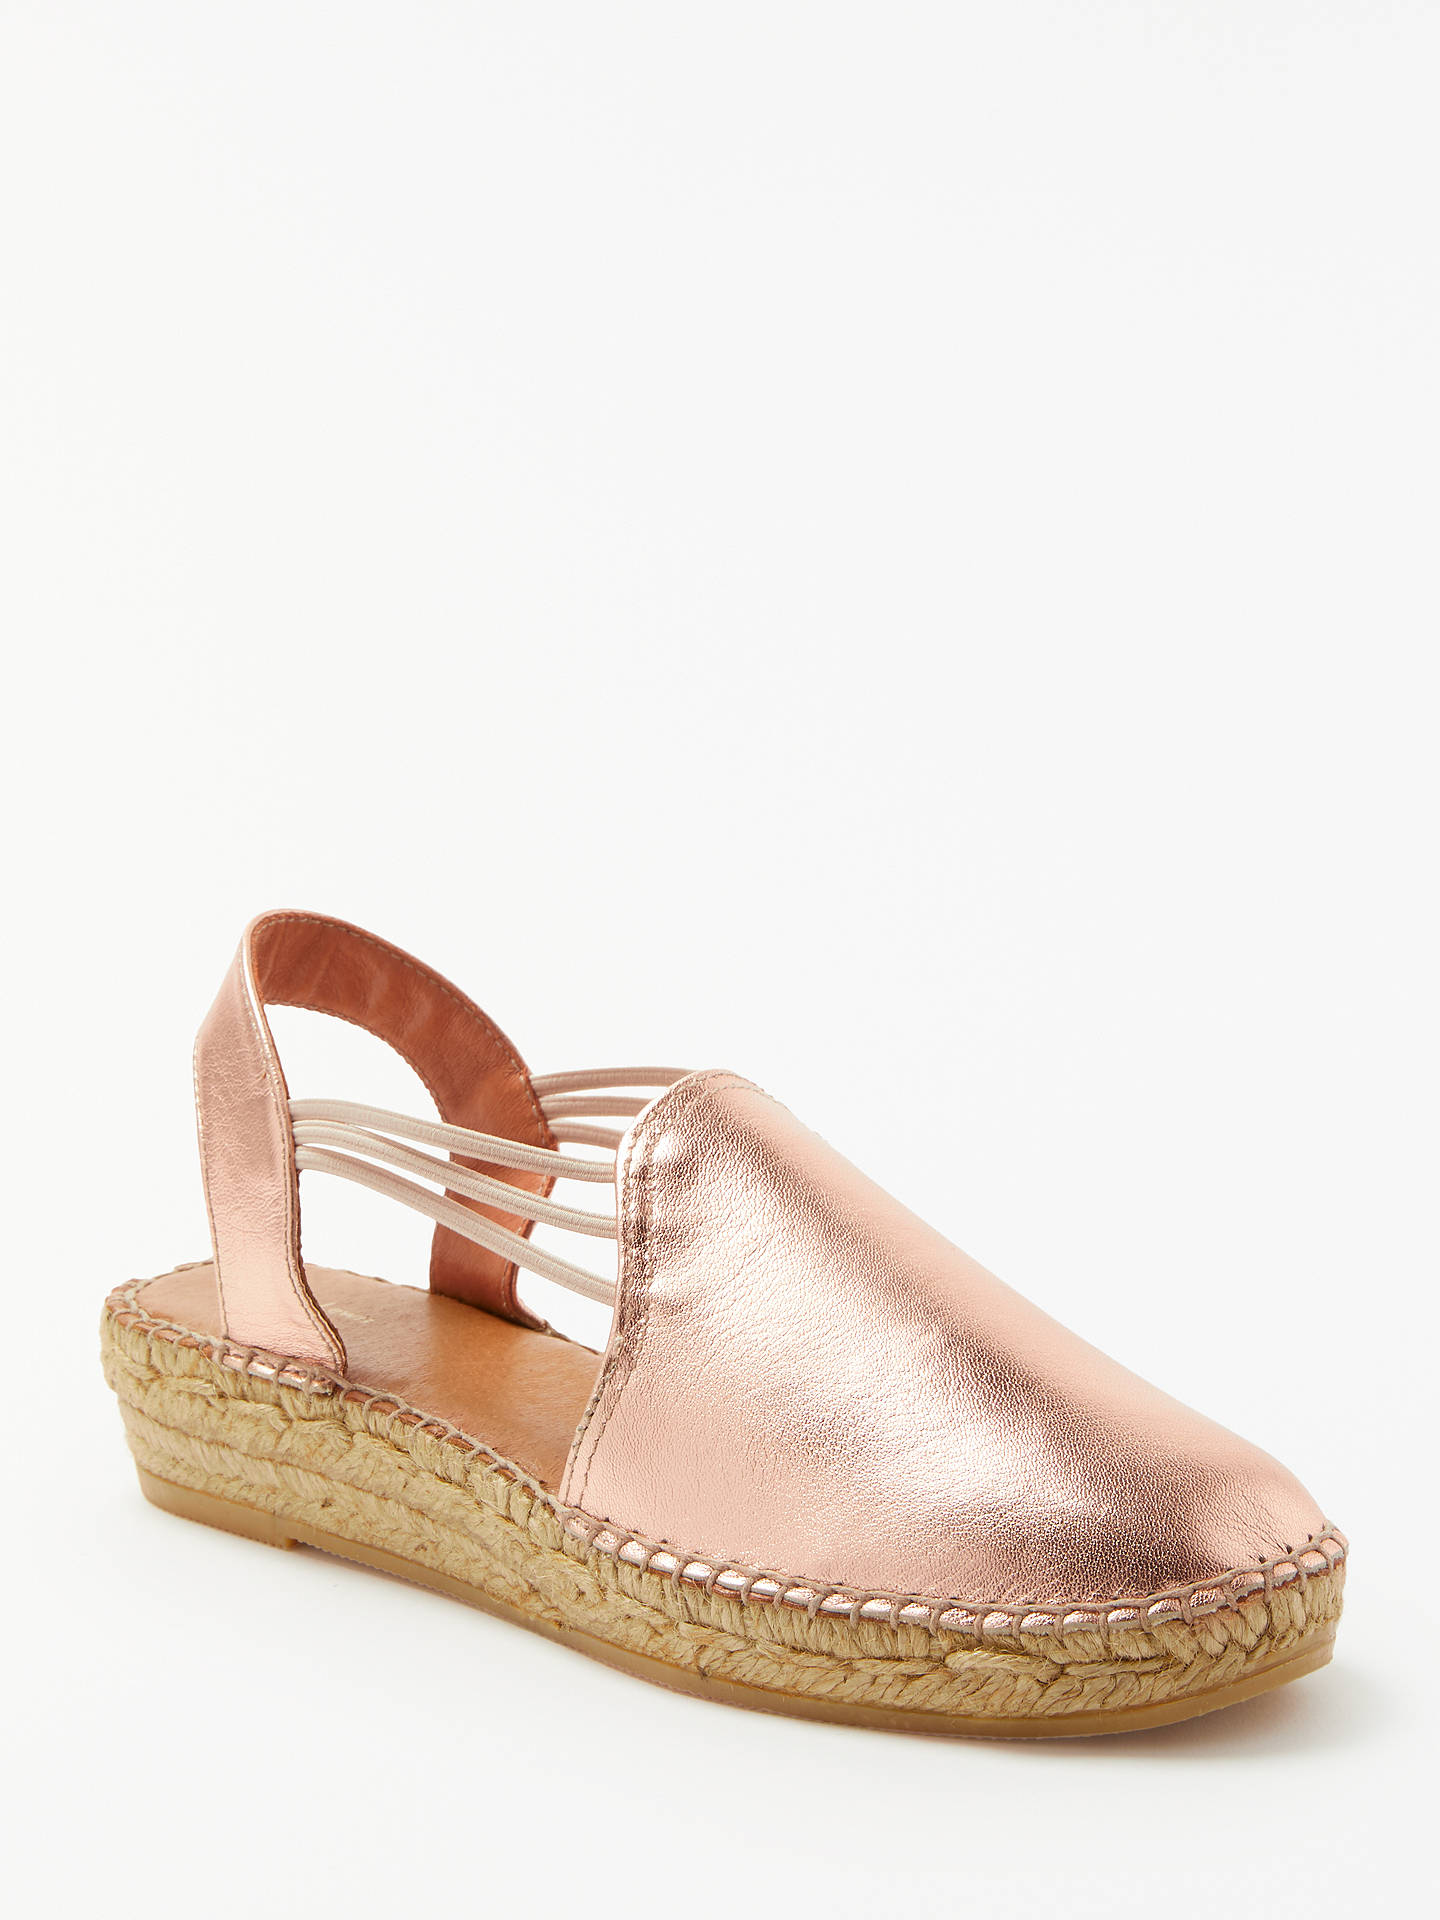 BuyJohn Lewis & Partners Nuria Espadrilles, Rose Gold Leather, 3 Online at johnlewis.com